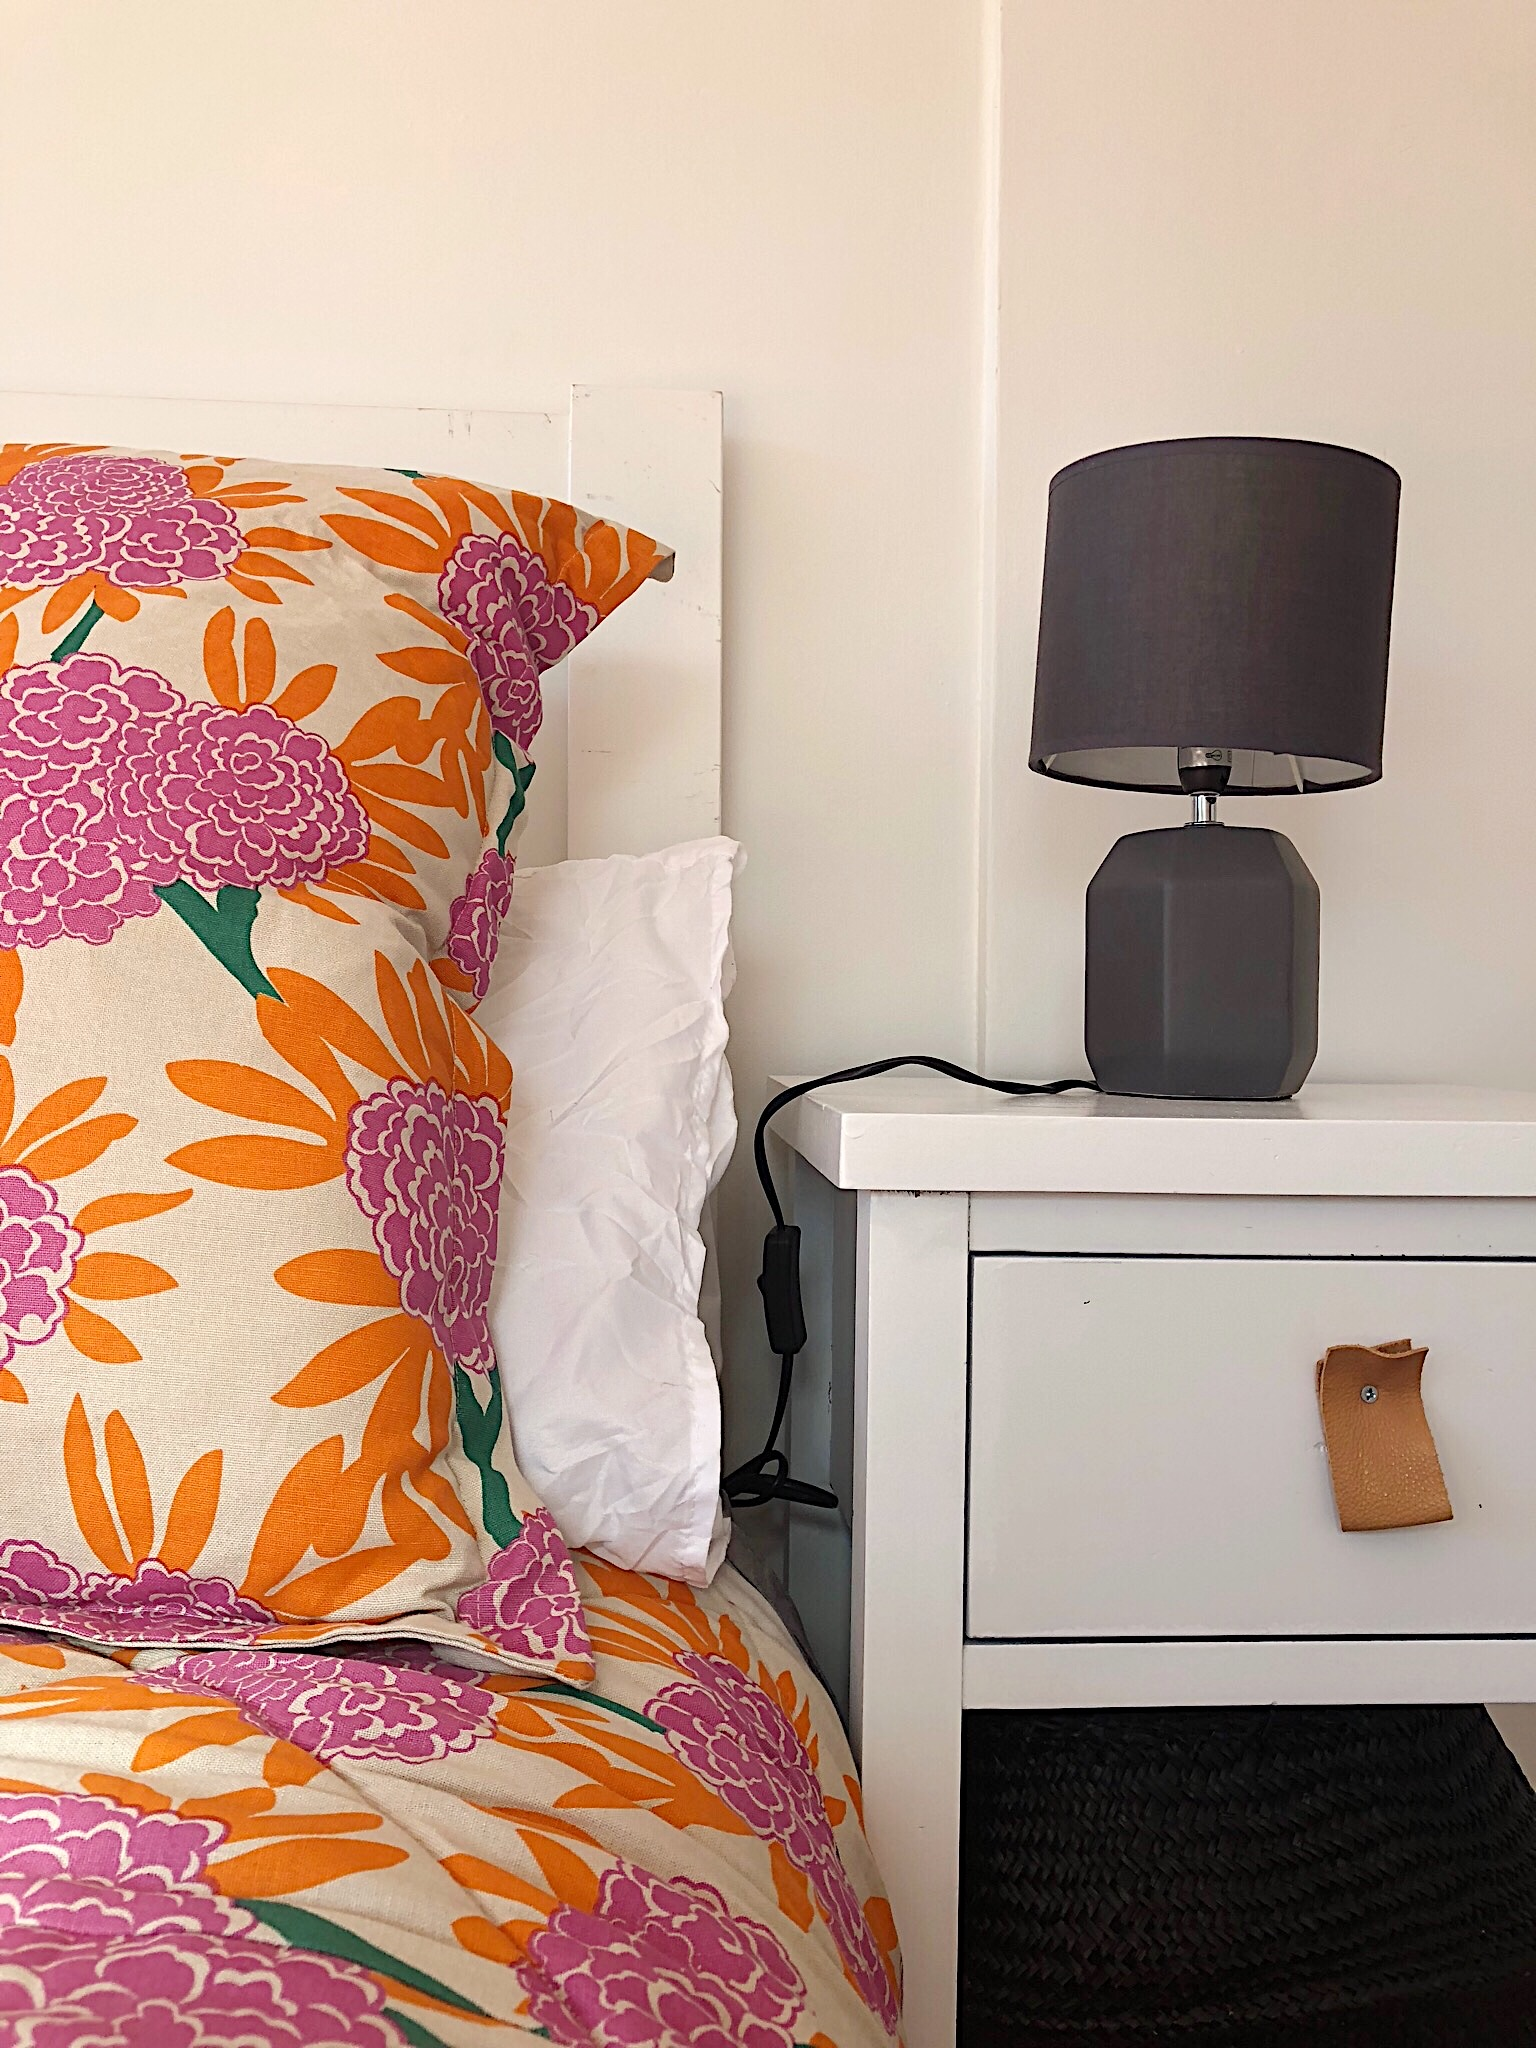 Pearson + Projects The Expert Reveal Bedroom Simple Quilt Flowers DIY Side Table.jpg